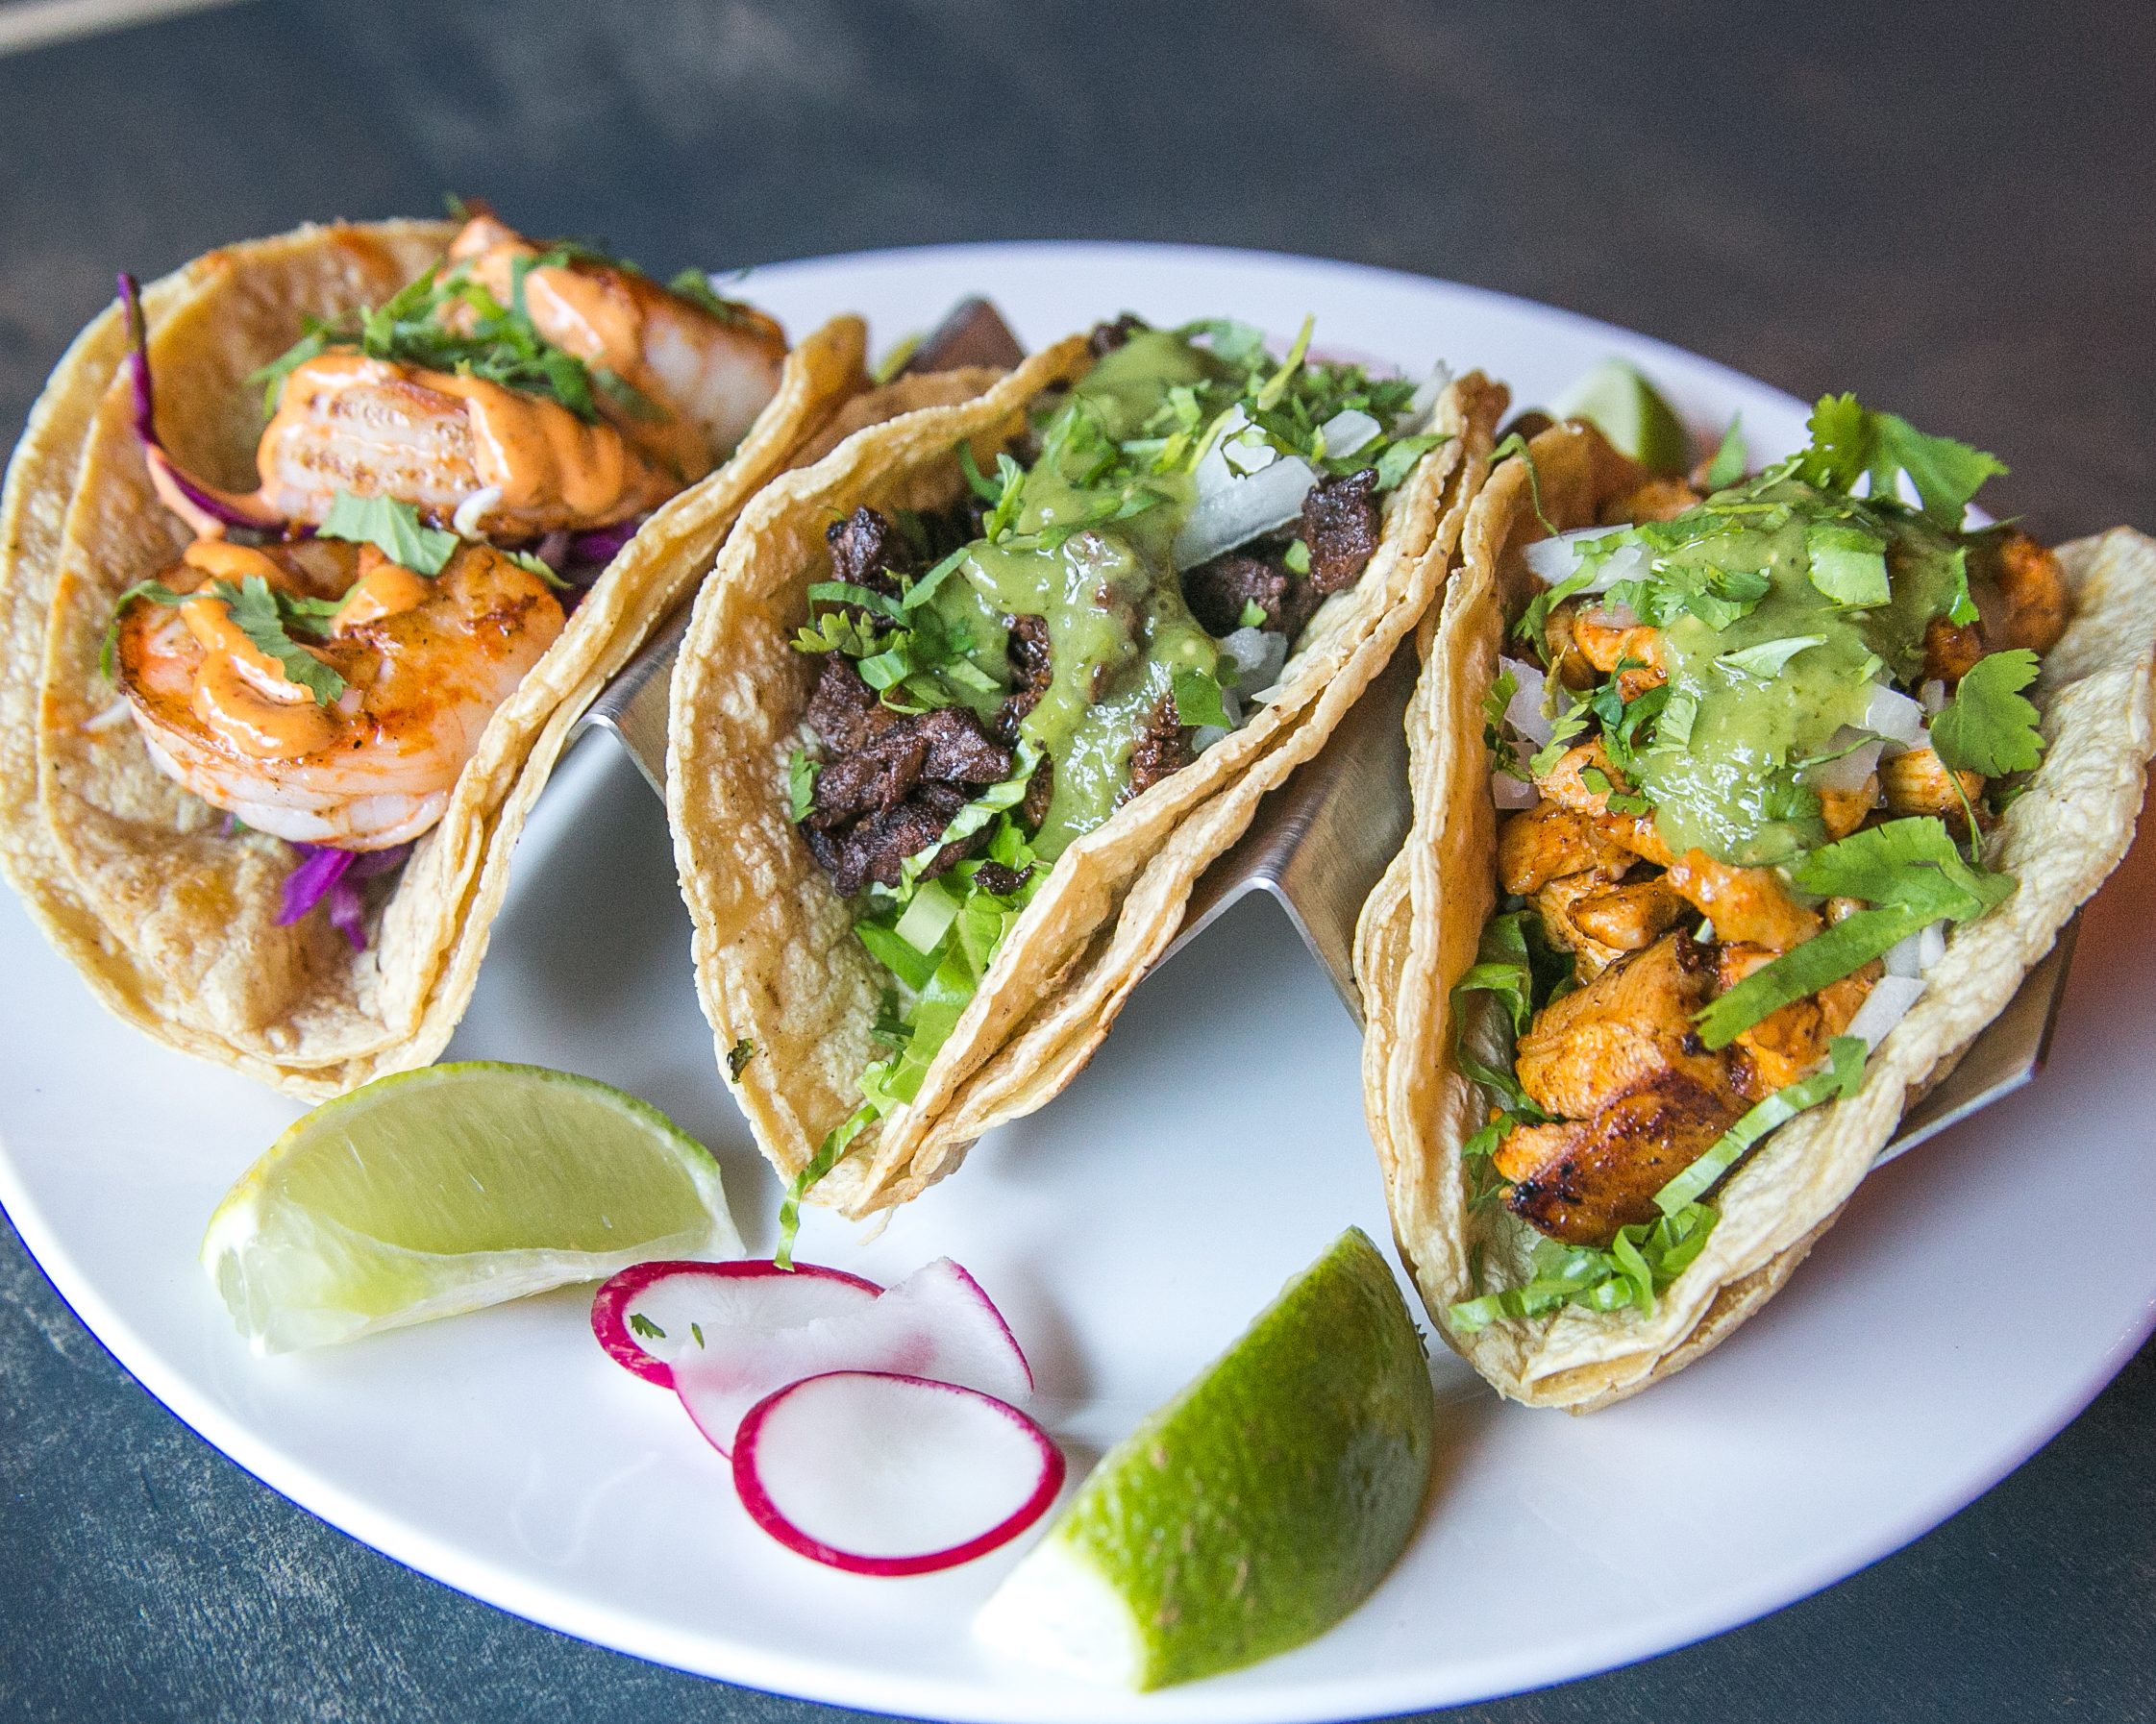 Bushwick Taco Co_Shrimp Steak and Chicken Tacos_native-3.jpg